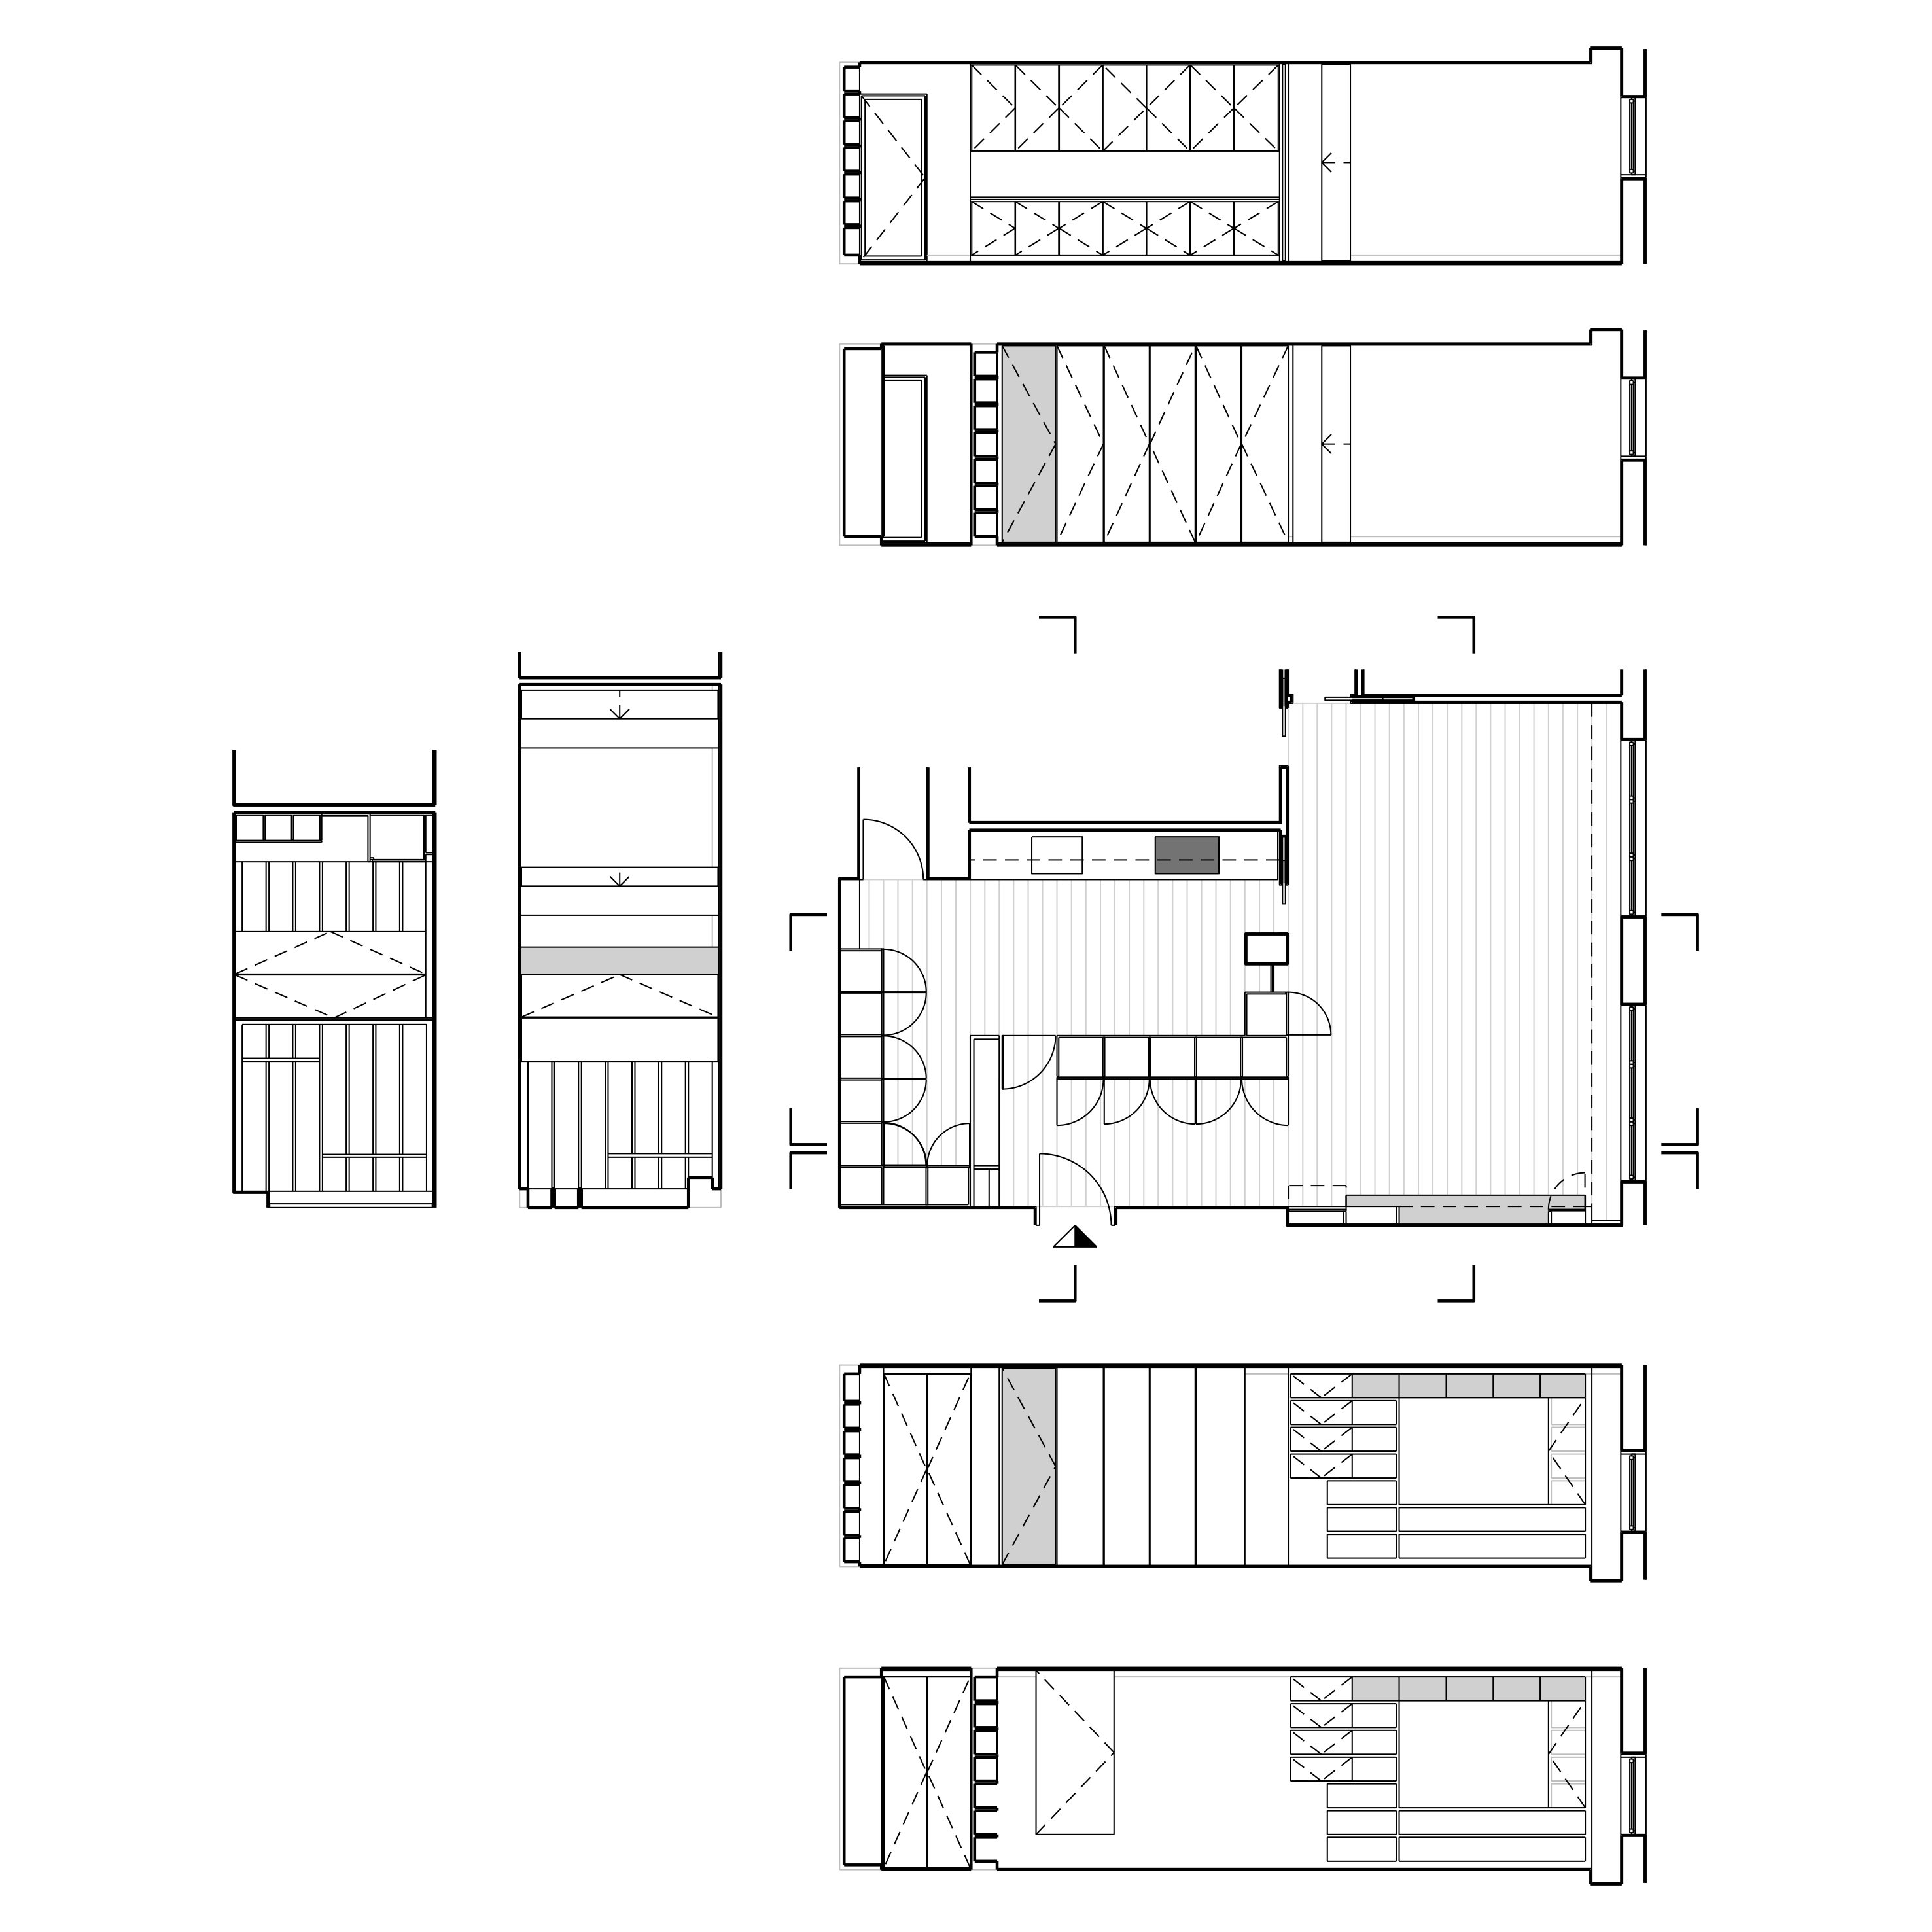 House plans search advanced house interior House plans advanced search